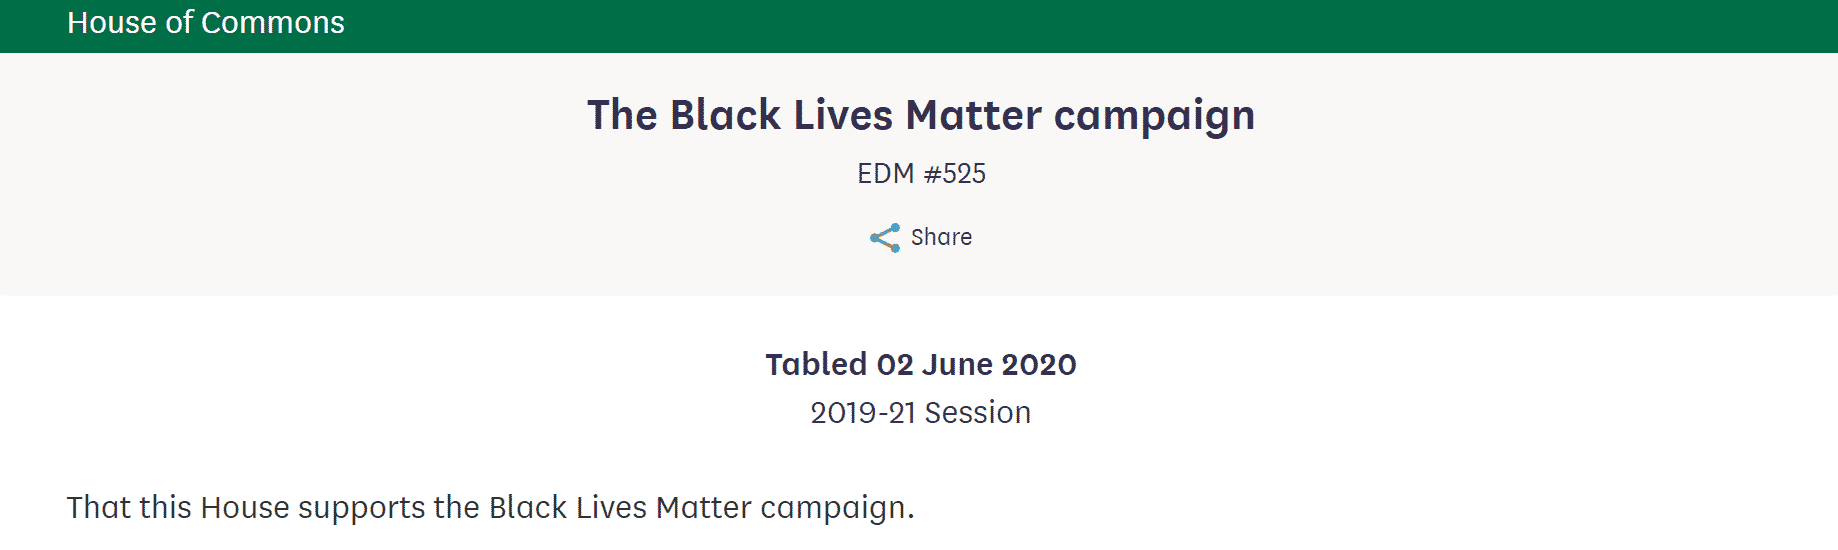 Copy of the text of edm #525 o the Black Lives Matter campaign